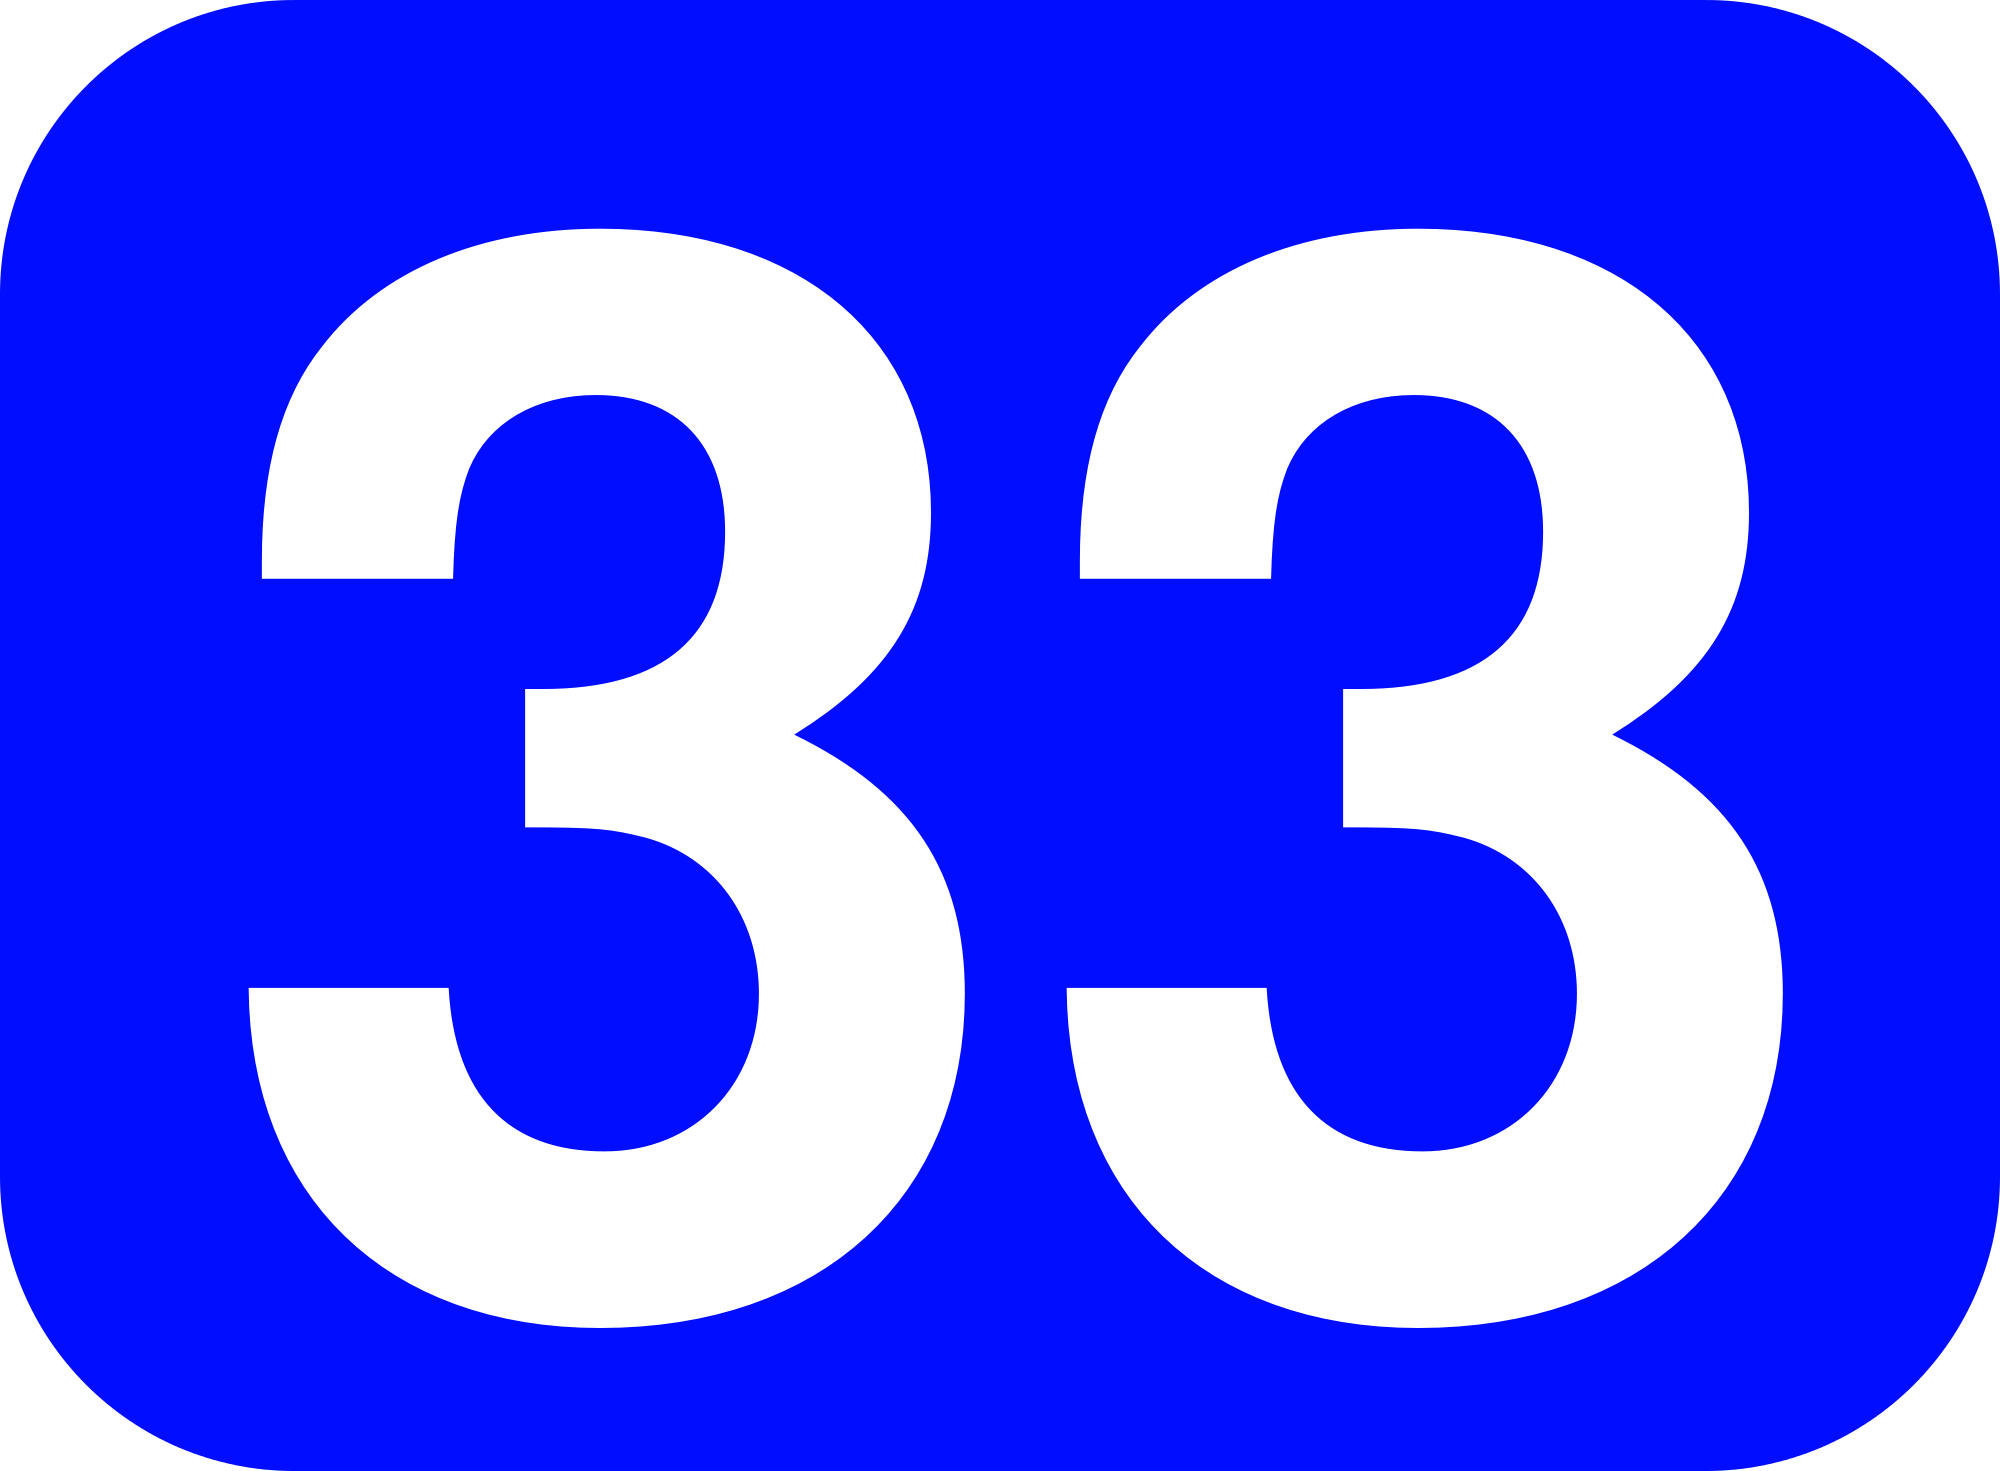 File:33 white, blue rounded rectangle.png